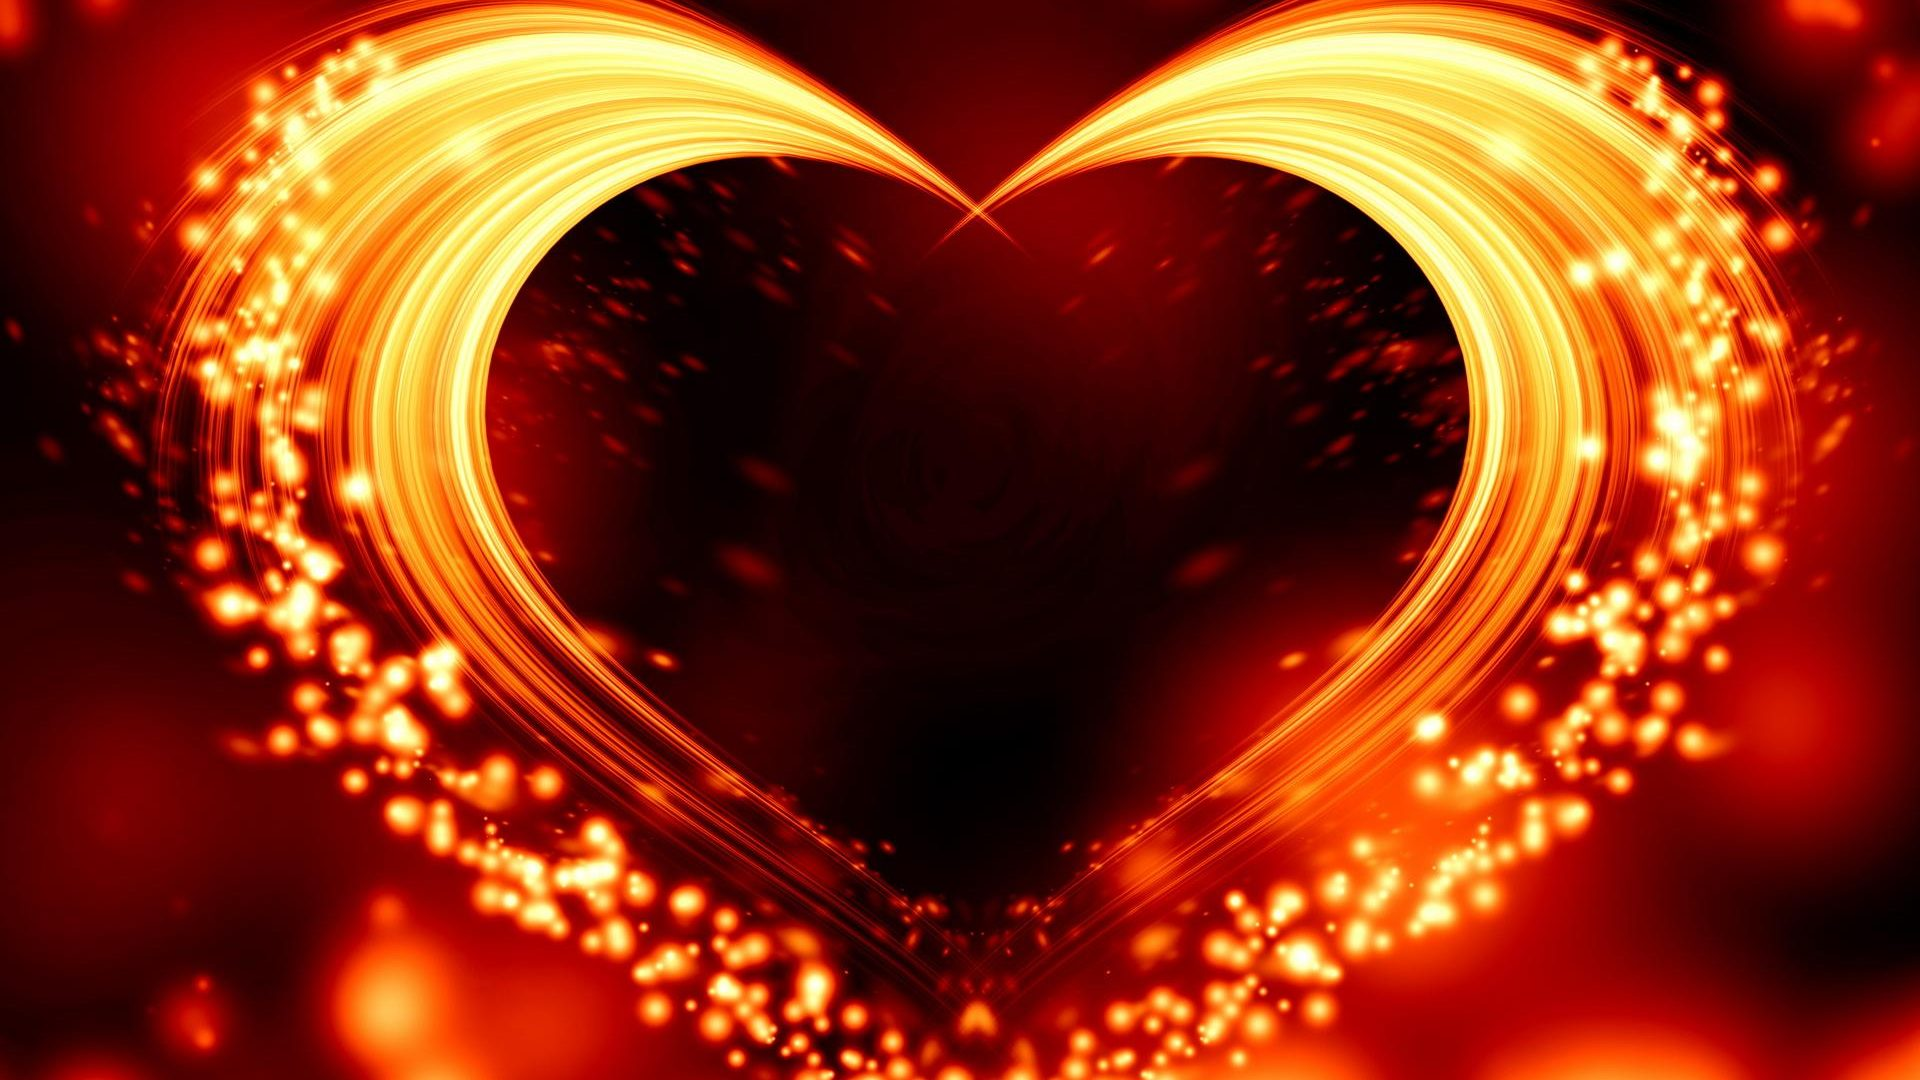 Romantic Love Couple Wallpapers With Quotes Love The Fire Inside Wallpapers13 Com